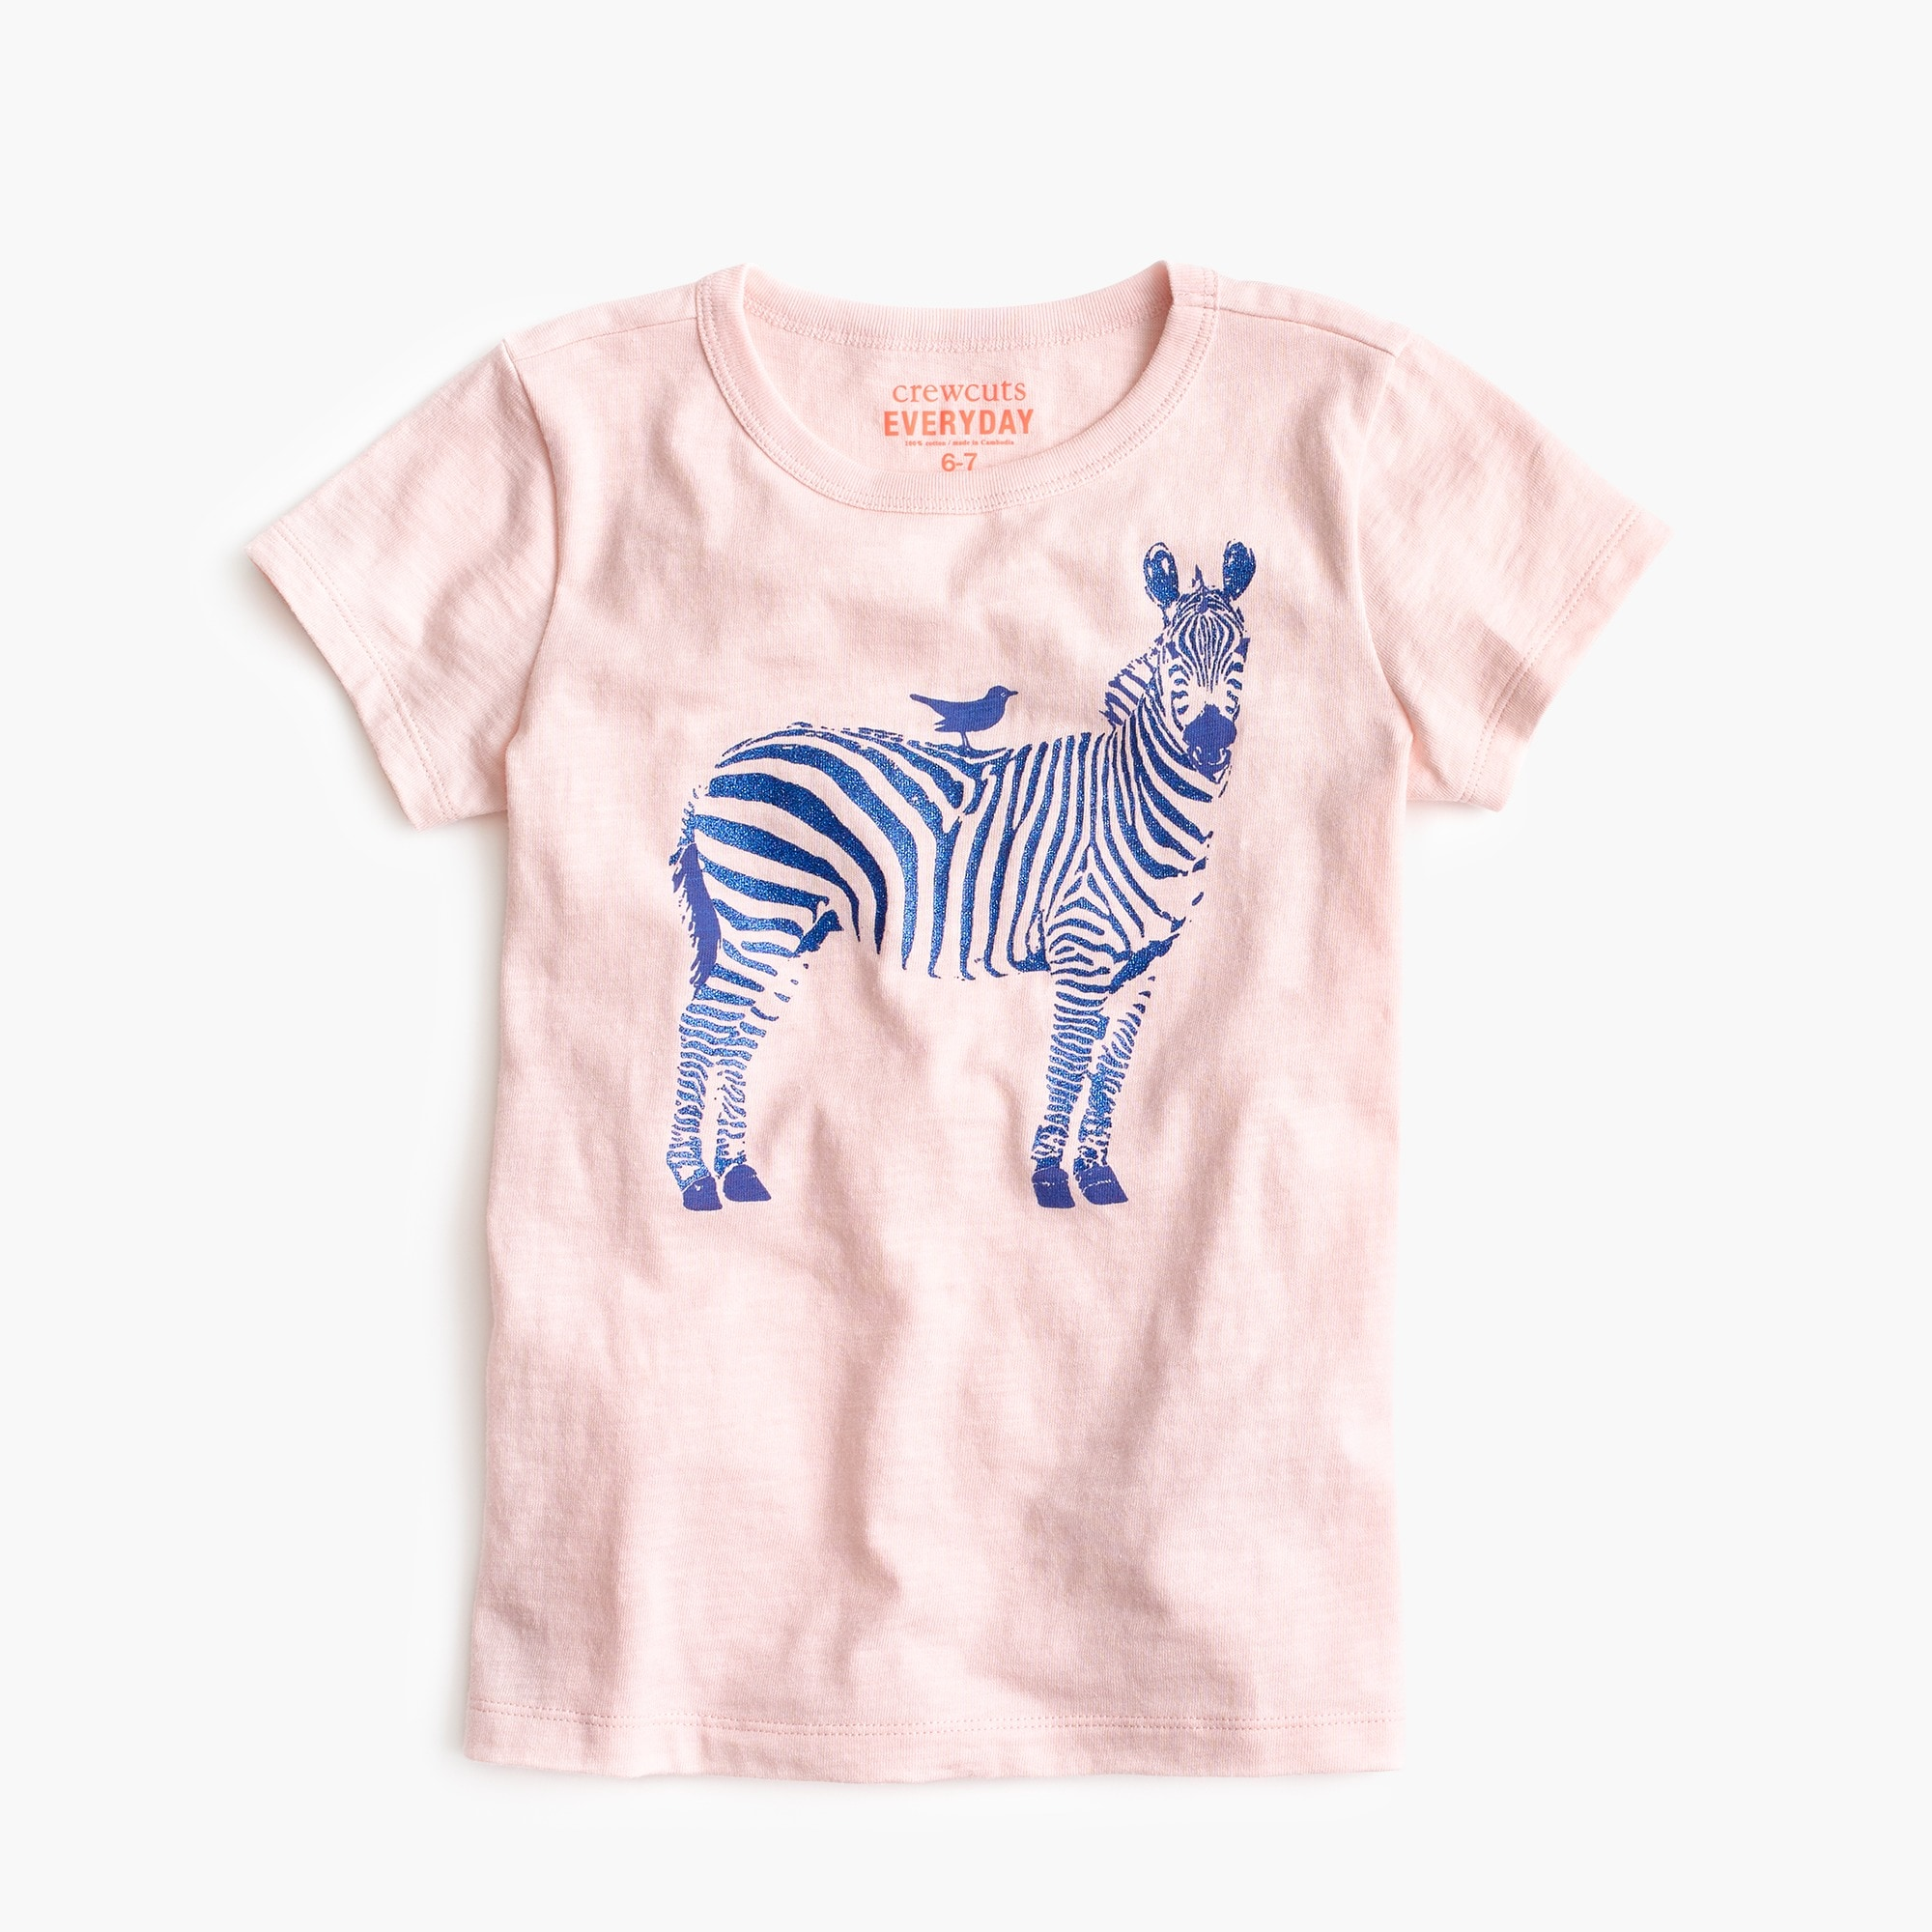 Girls' zebra T-shirt girl new arrivals c